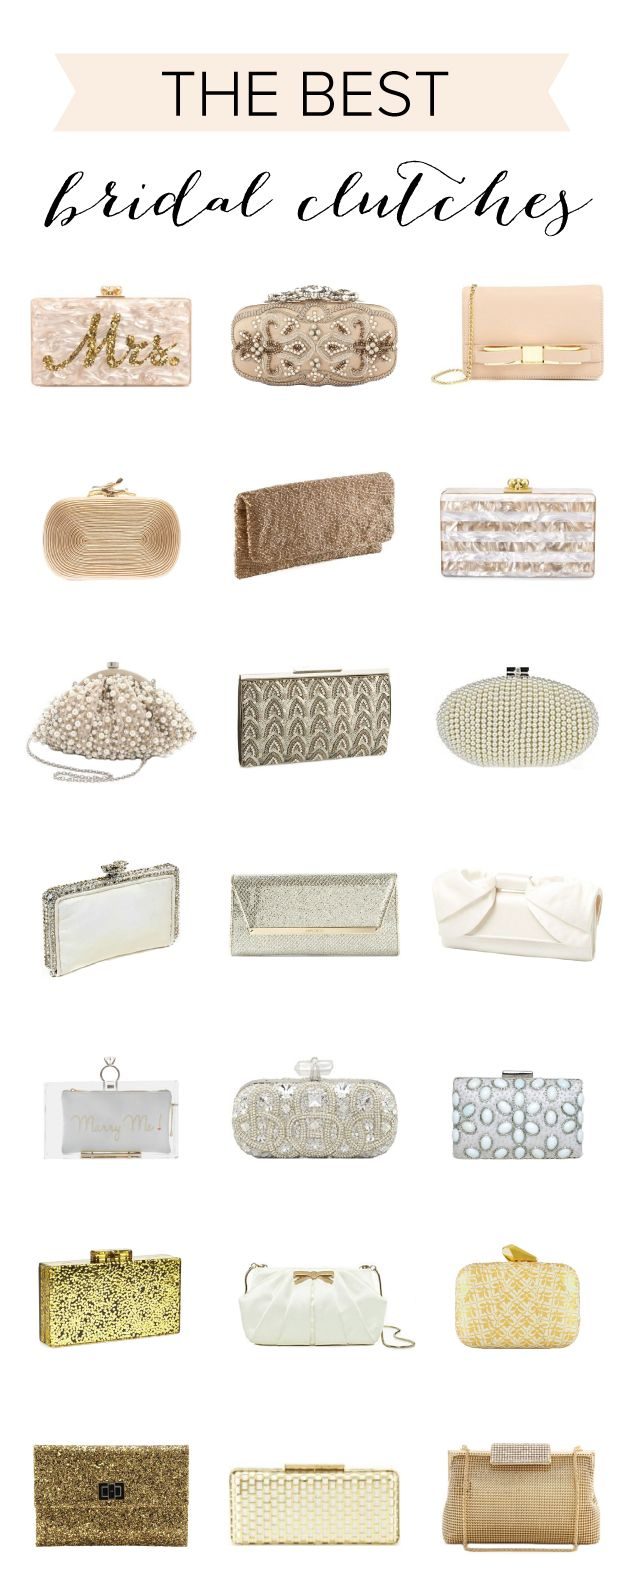 The Most Beautiful Bridal Clutches Ever Bridal Musings Bridal Clutch Bridal Bag Wedding Bridal Jewellery